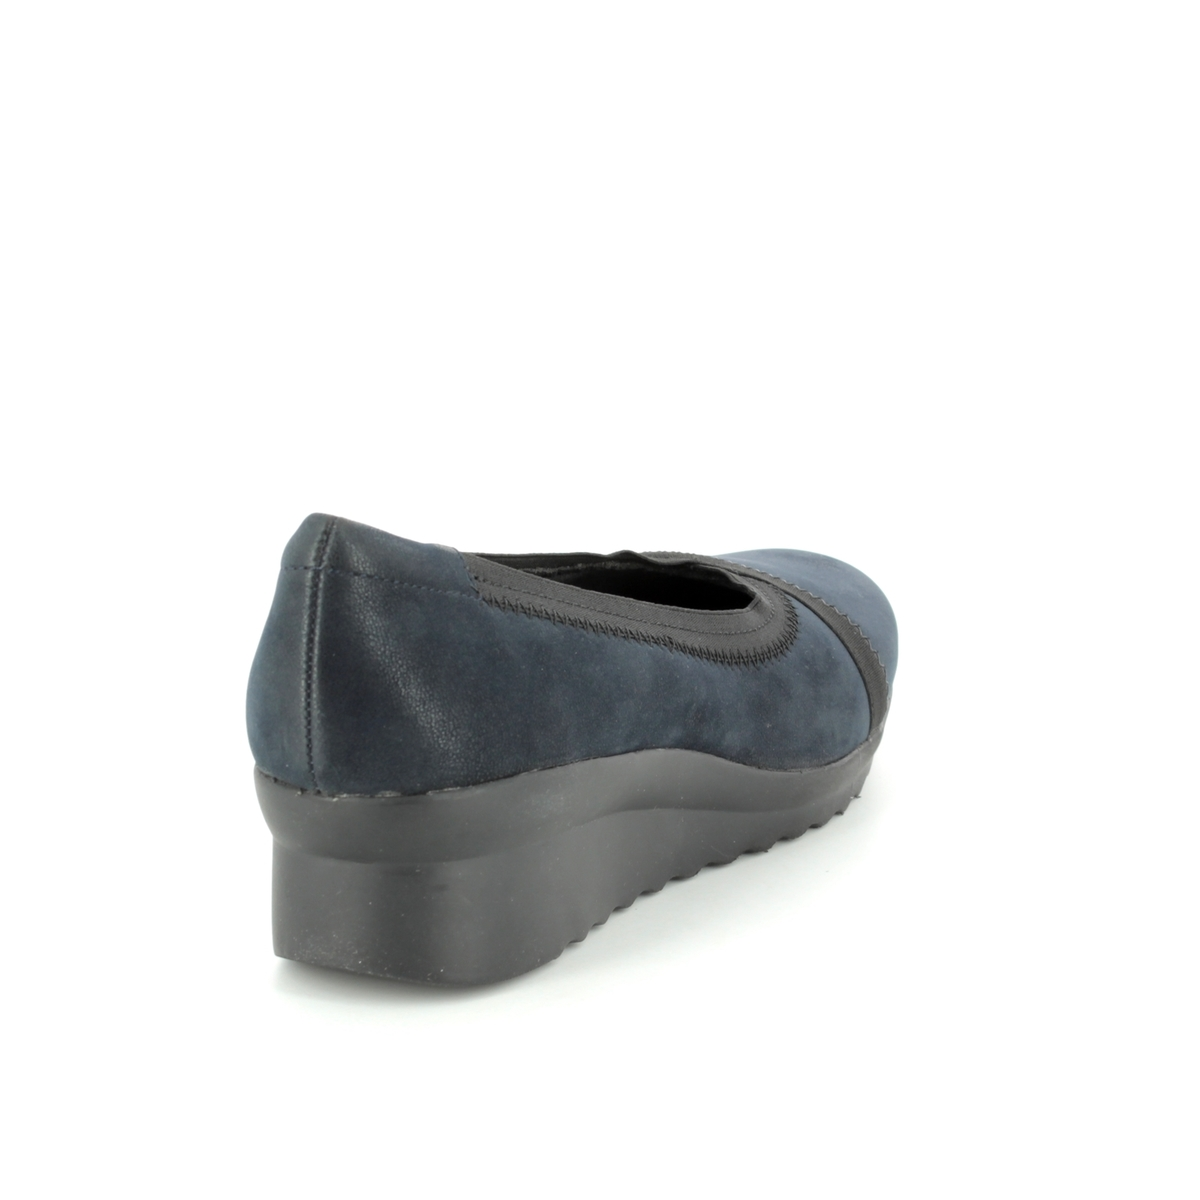 016930d0273 Clarks Wedge Shoes - Navy - 3202 34D CADDELL DASH